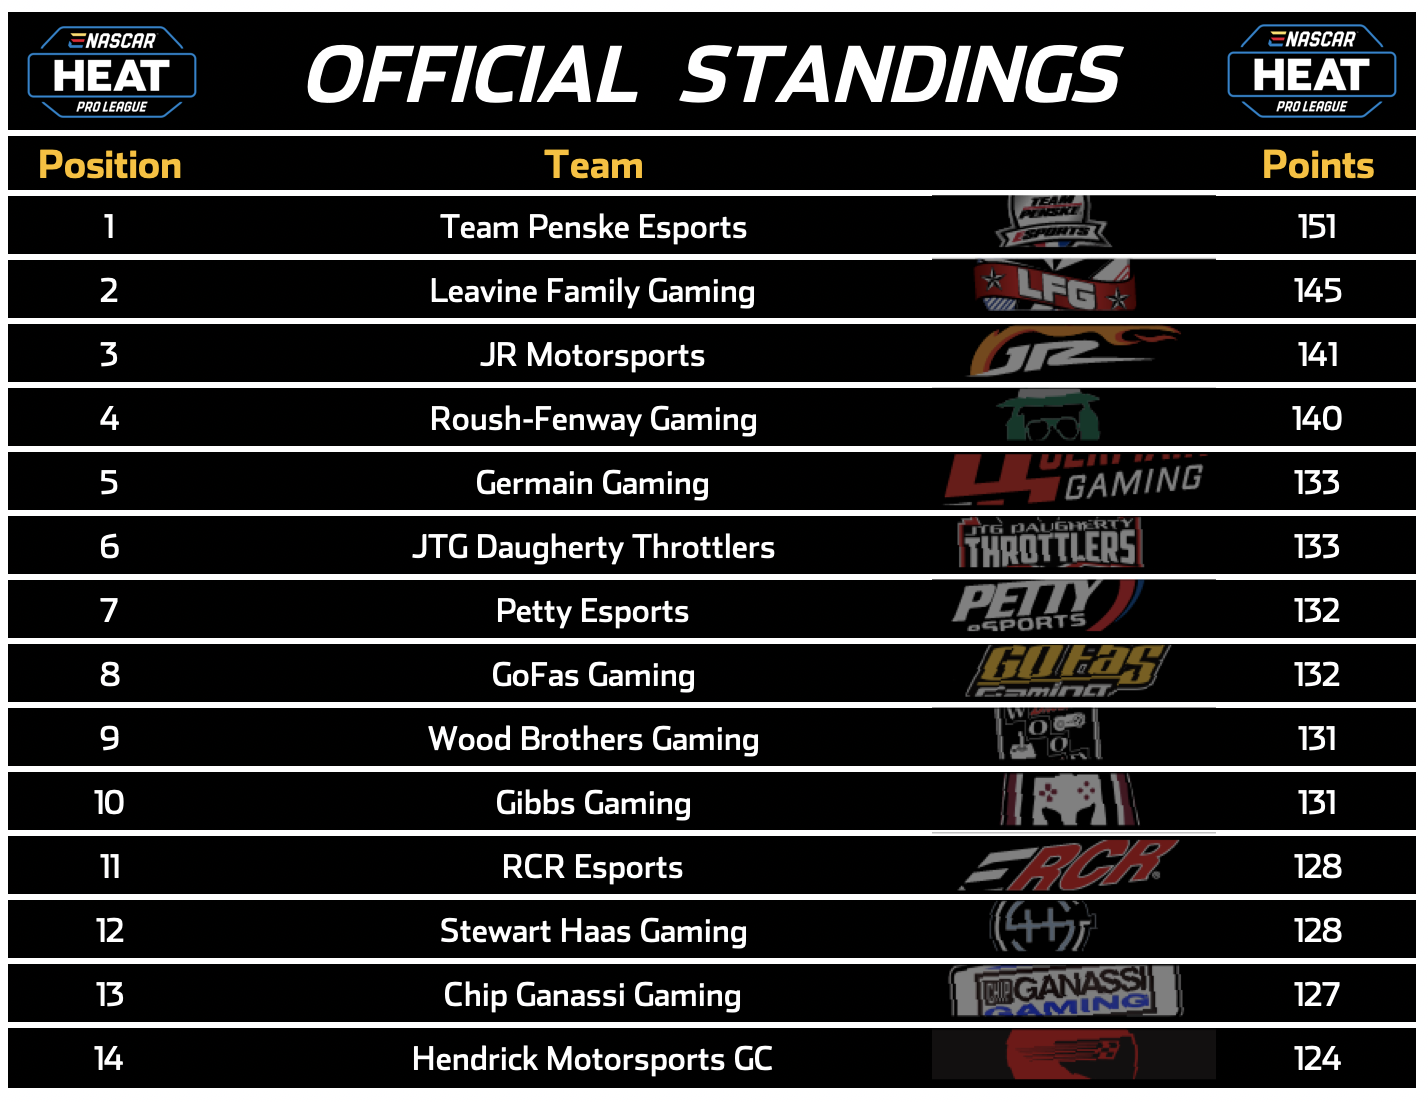 Team Penske Esports leads the overall points standings ahead of Leavine Family Gaming and JR Motorsports.